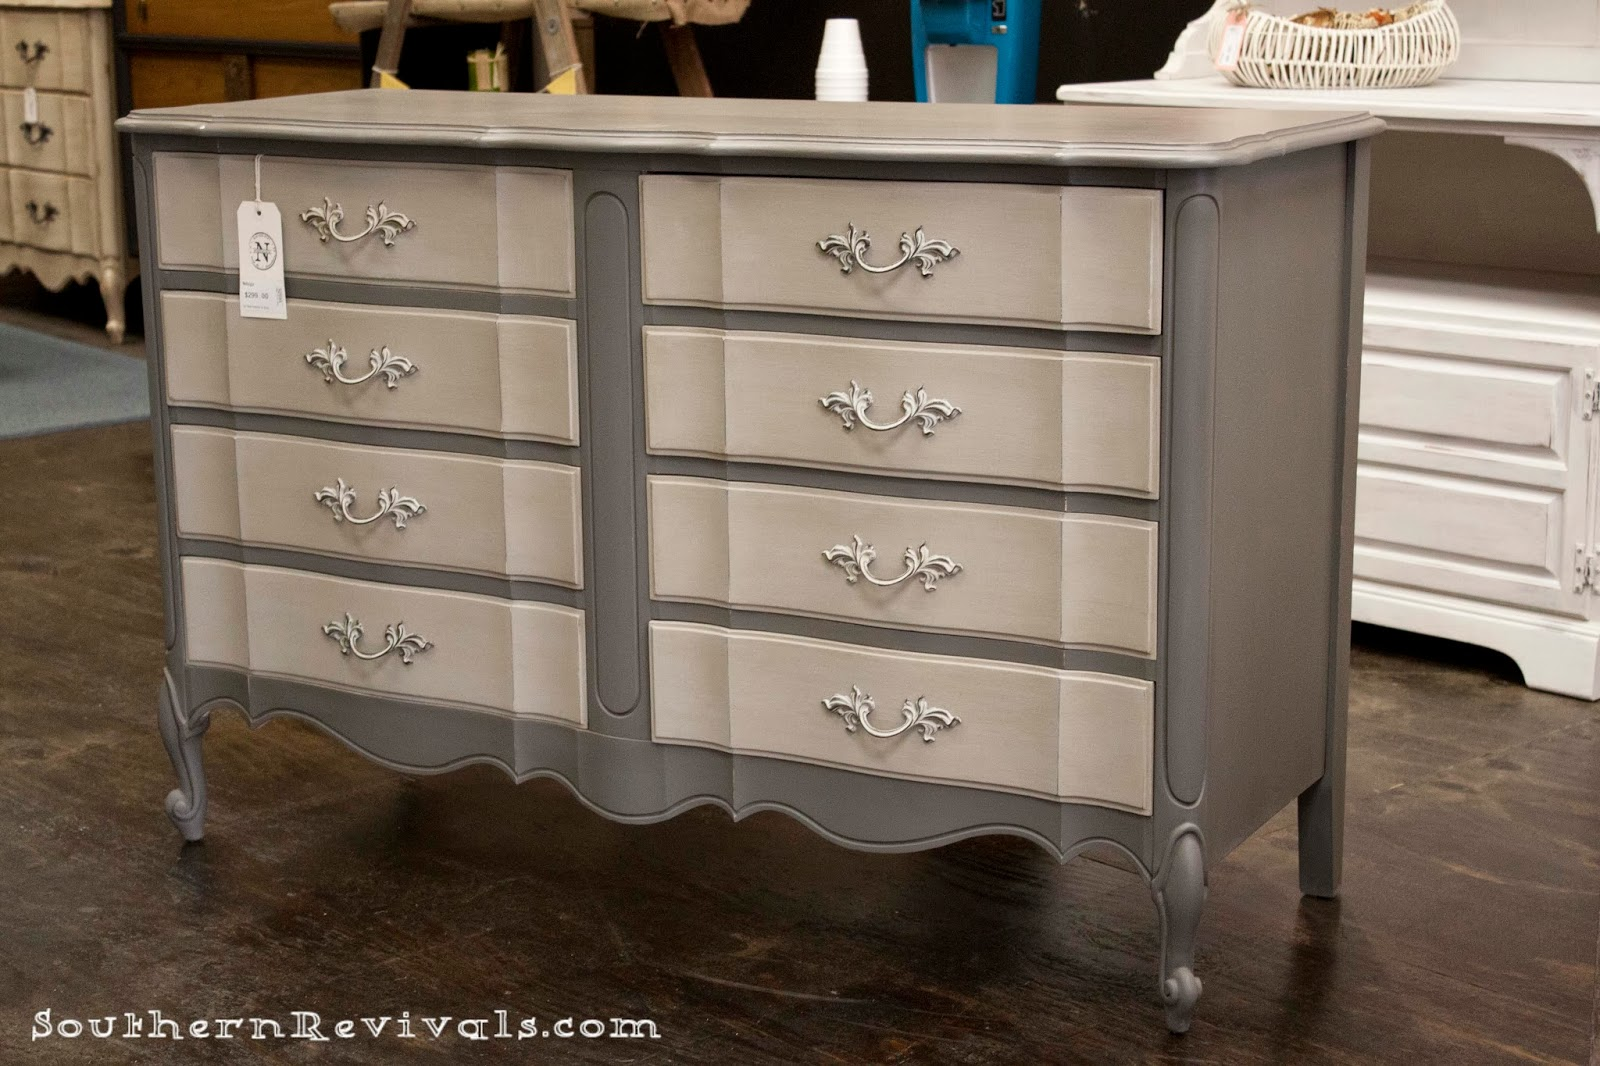 Painted French Provincial Bedroom Furniture For The Love Of Two Grays Two Toned Gray Dresser Southern Revivals